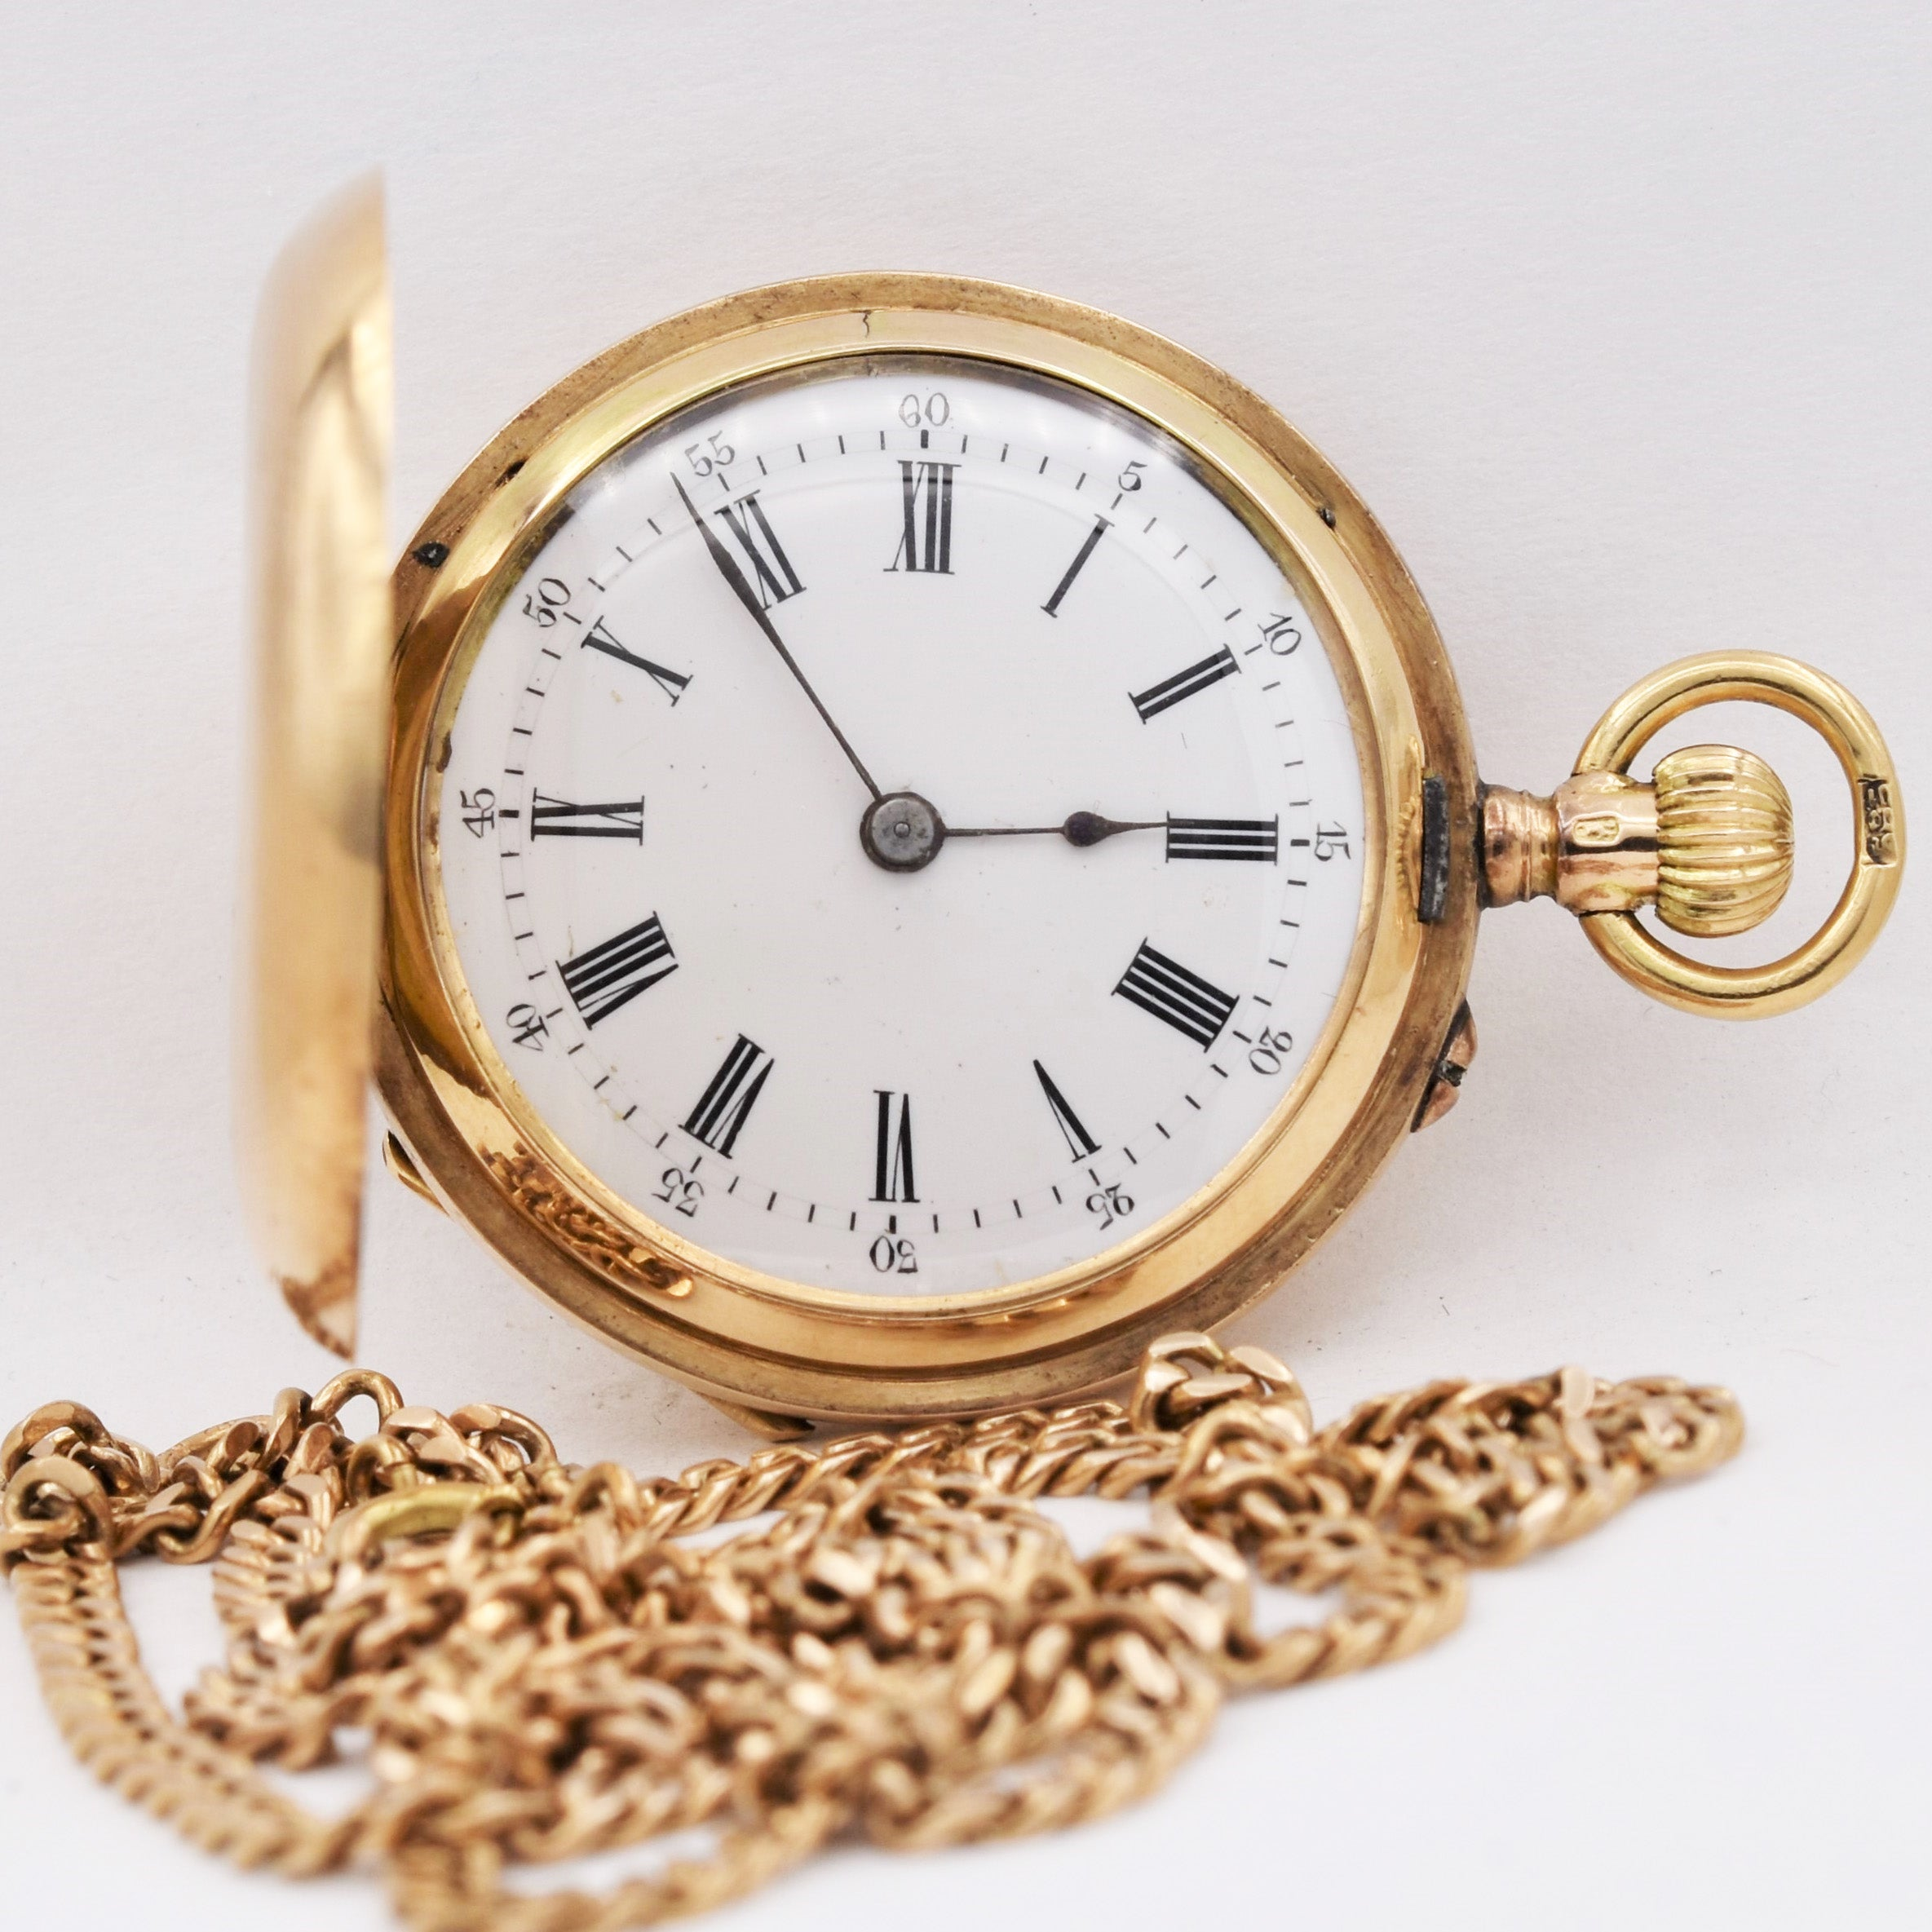 an lotfinder link compris details breguet watches souscription lot of extremely chain set gold hgk fine